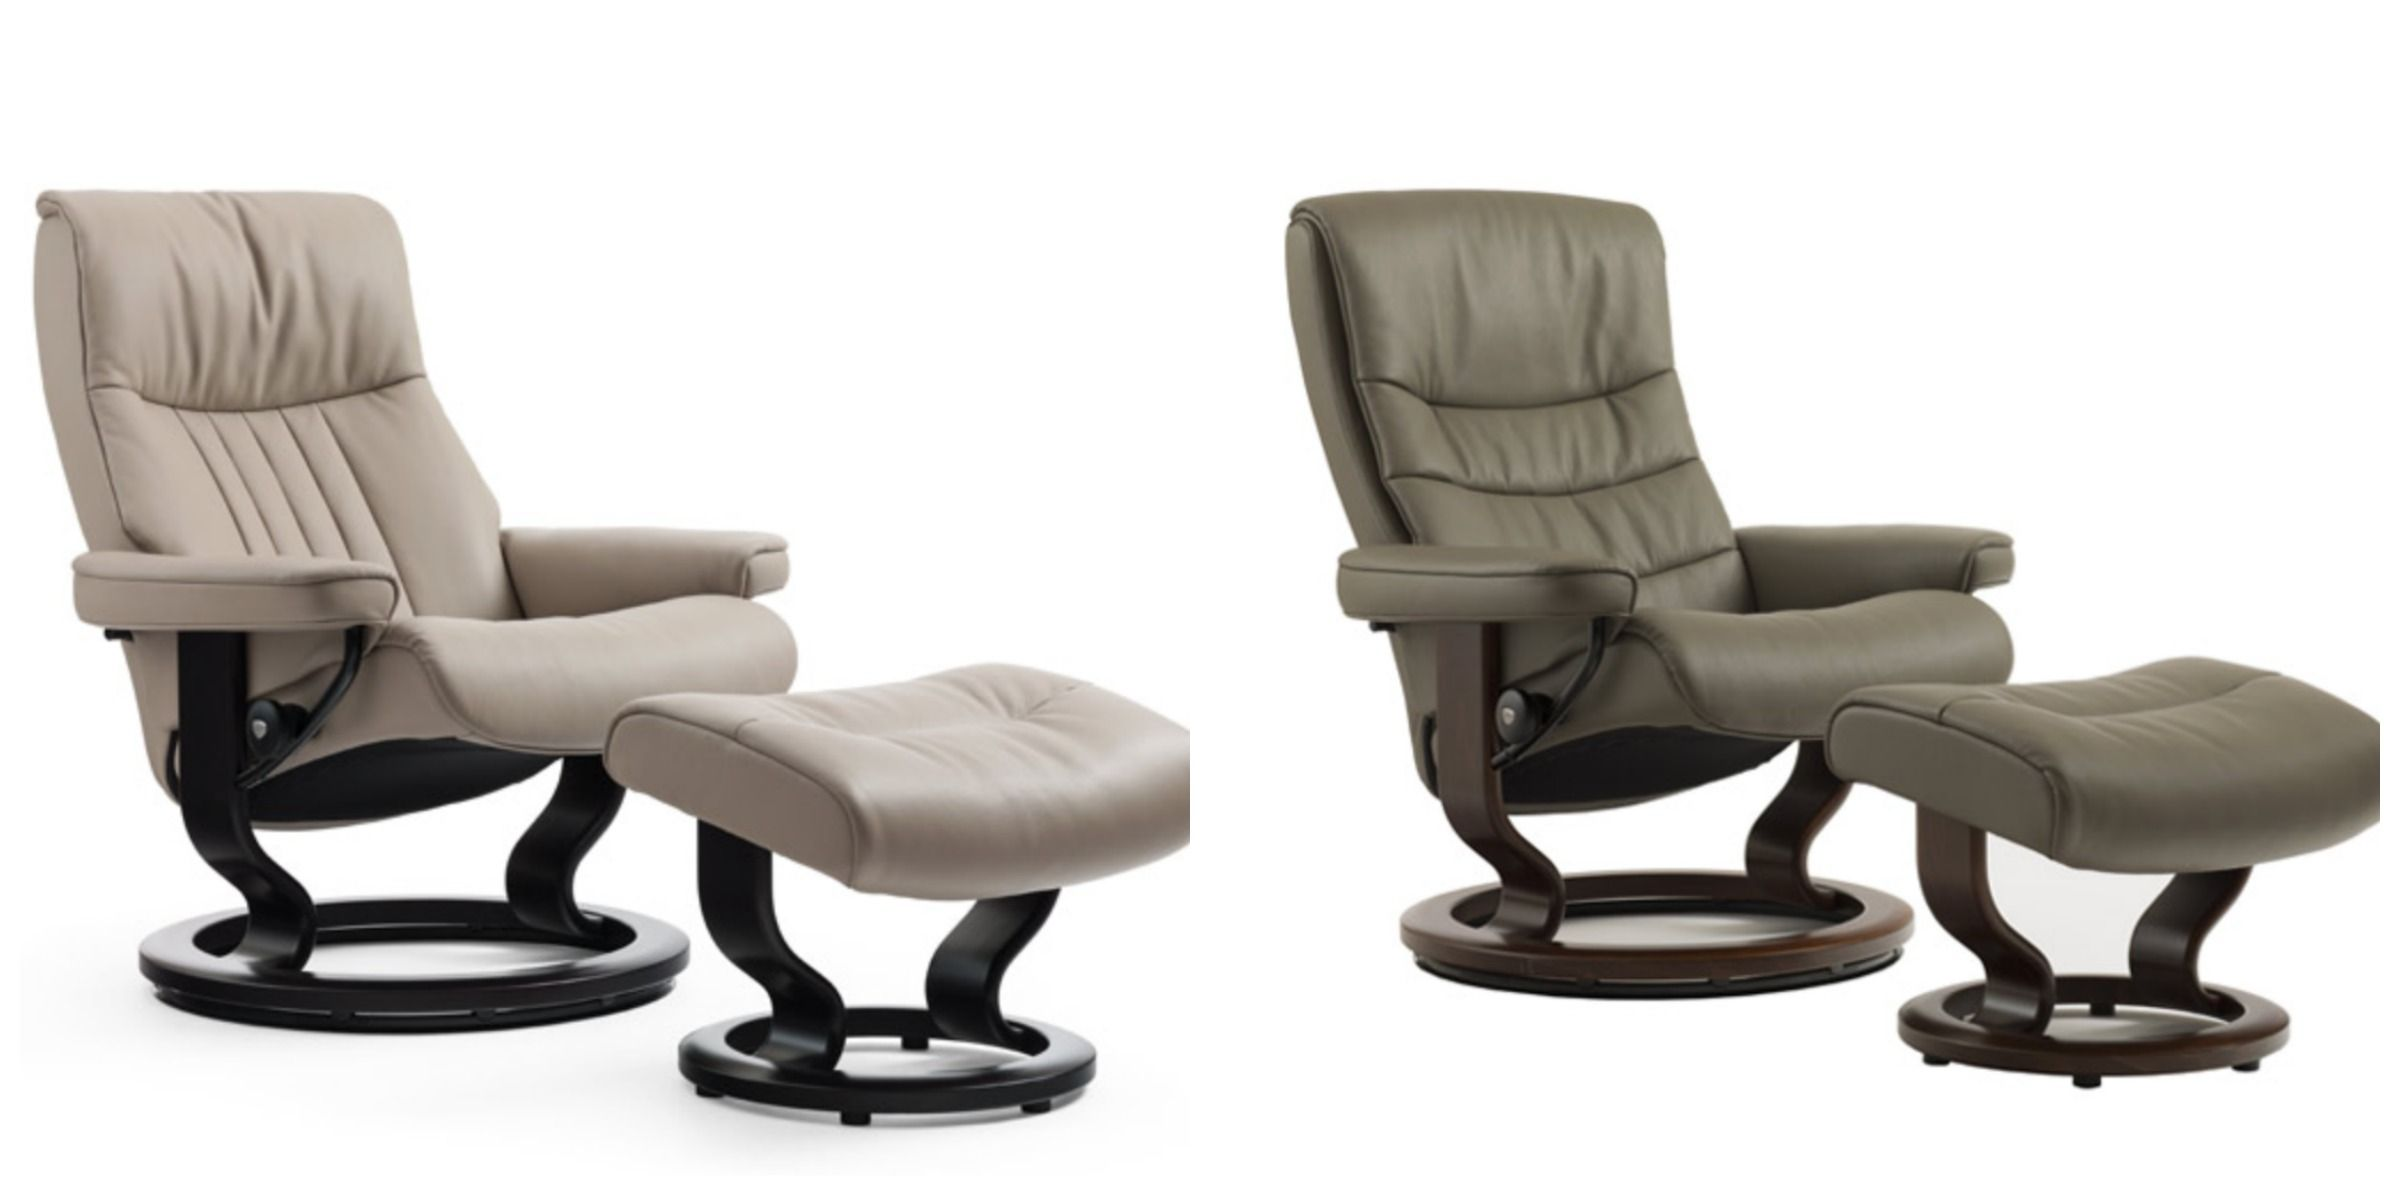 stressless chair similar distressed metal chairs nordic and crown møbler